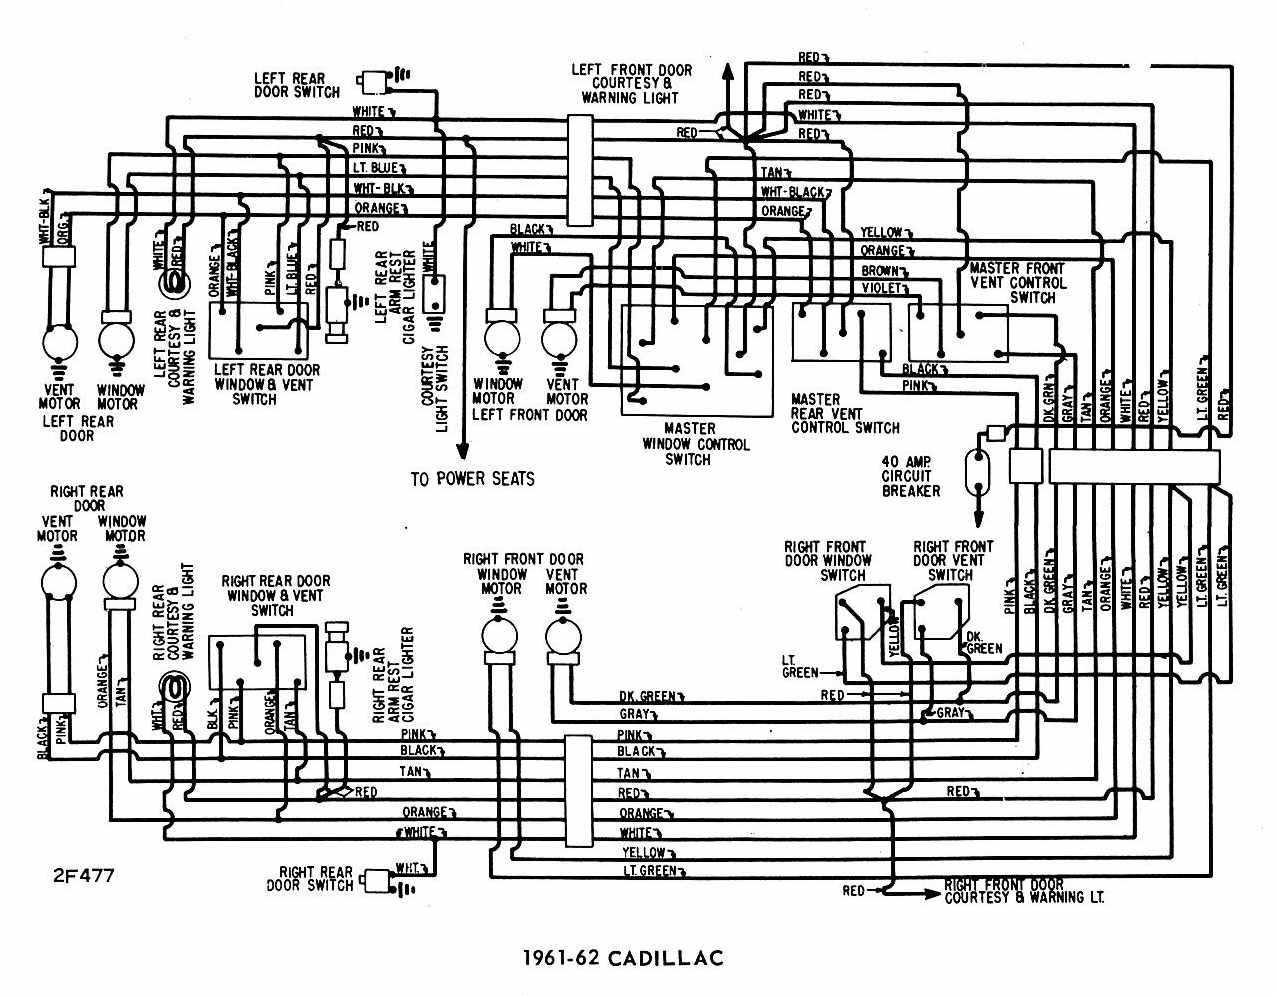 97 Cadillac Deville Fuse Box Diagram Simple Guide About Wiring 2005 Buick Park Avenue Sts In The Back Seat 1997